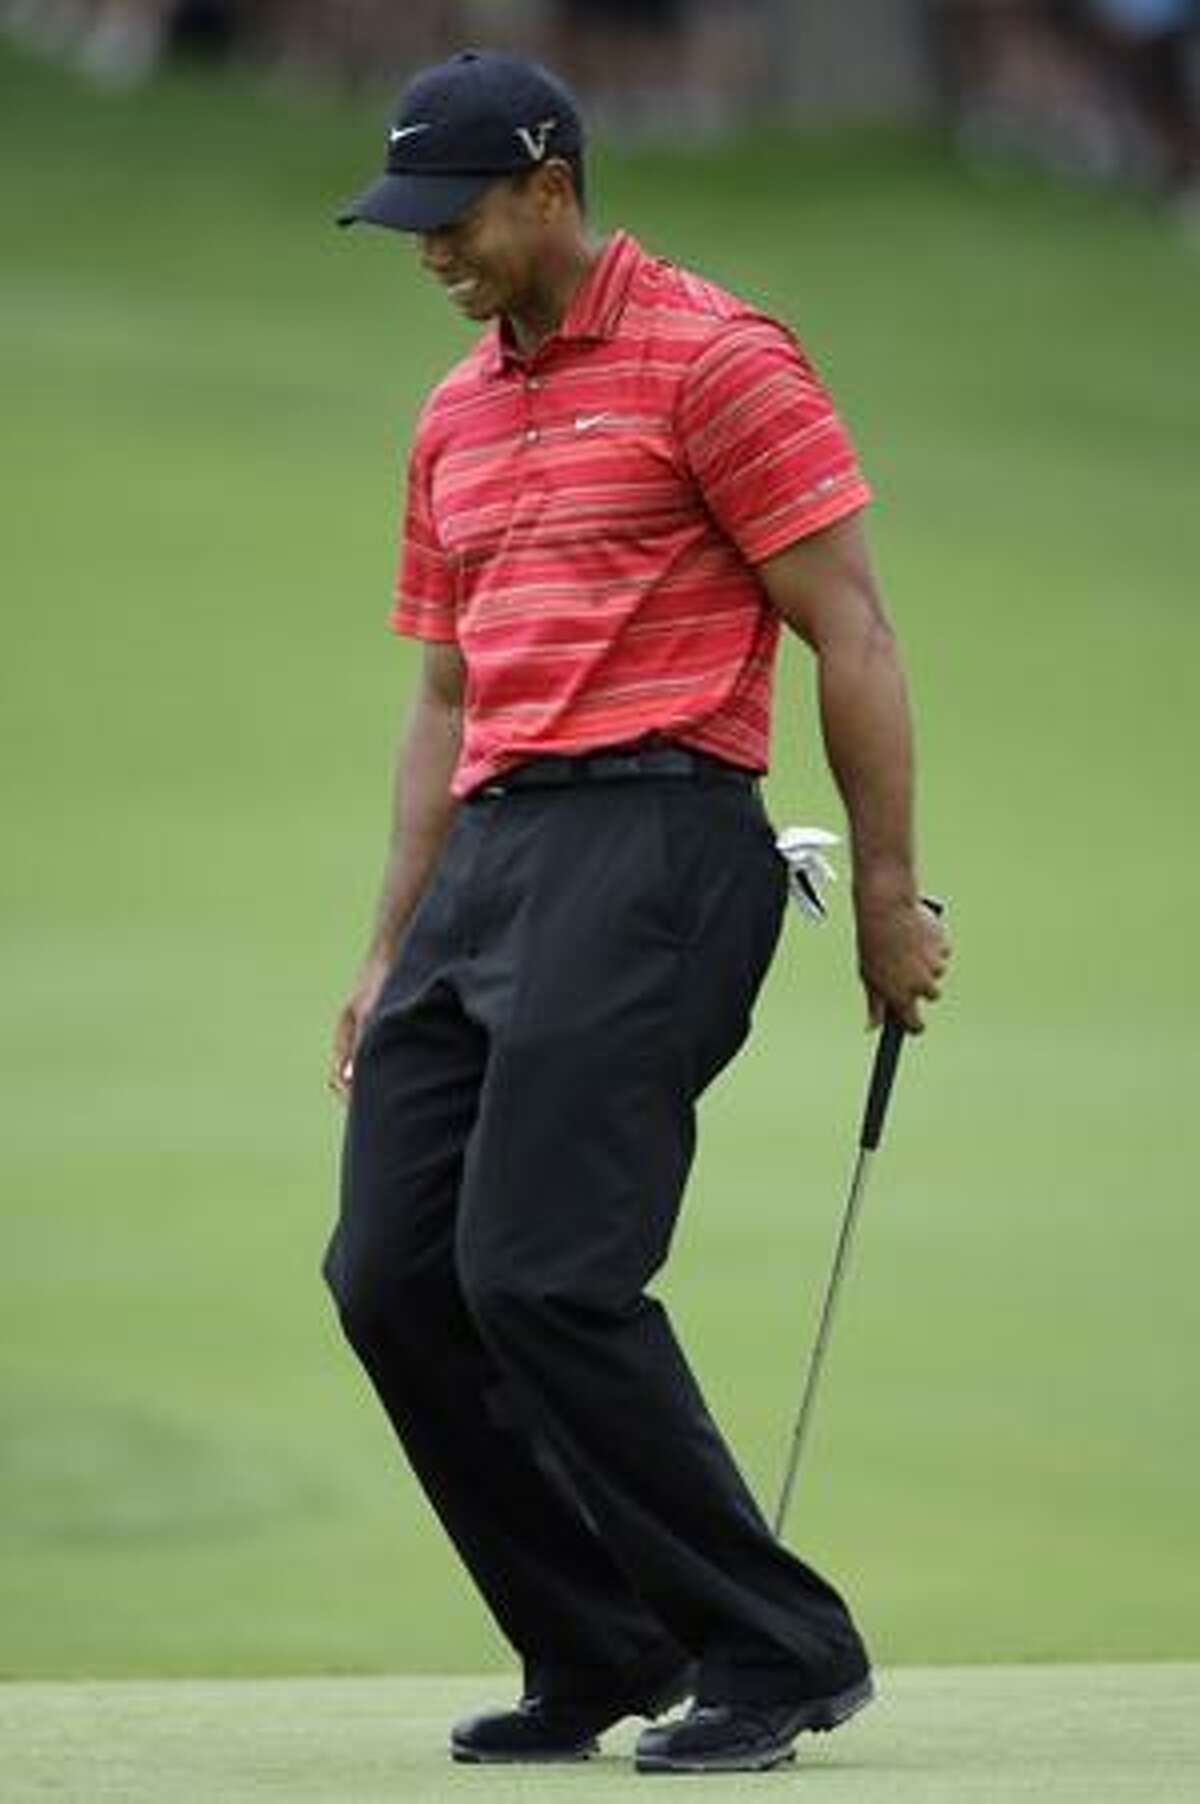 AP Tiger Woods reacts after missing an eagle putt on the 11th green during the final round of the 91st PGA Championship at the Hazeltine National Golf Club in Chaska, Minn., Sunday.